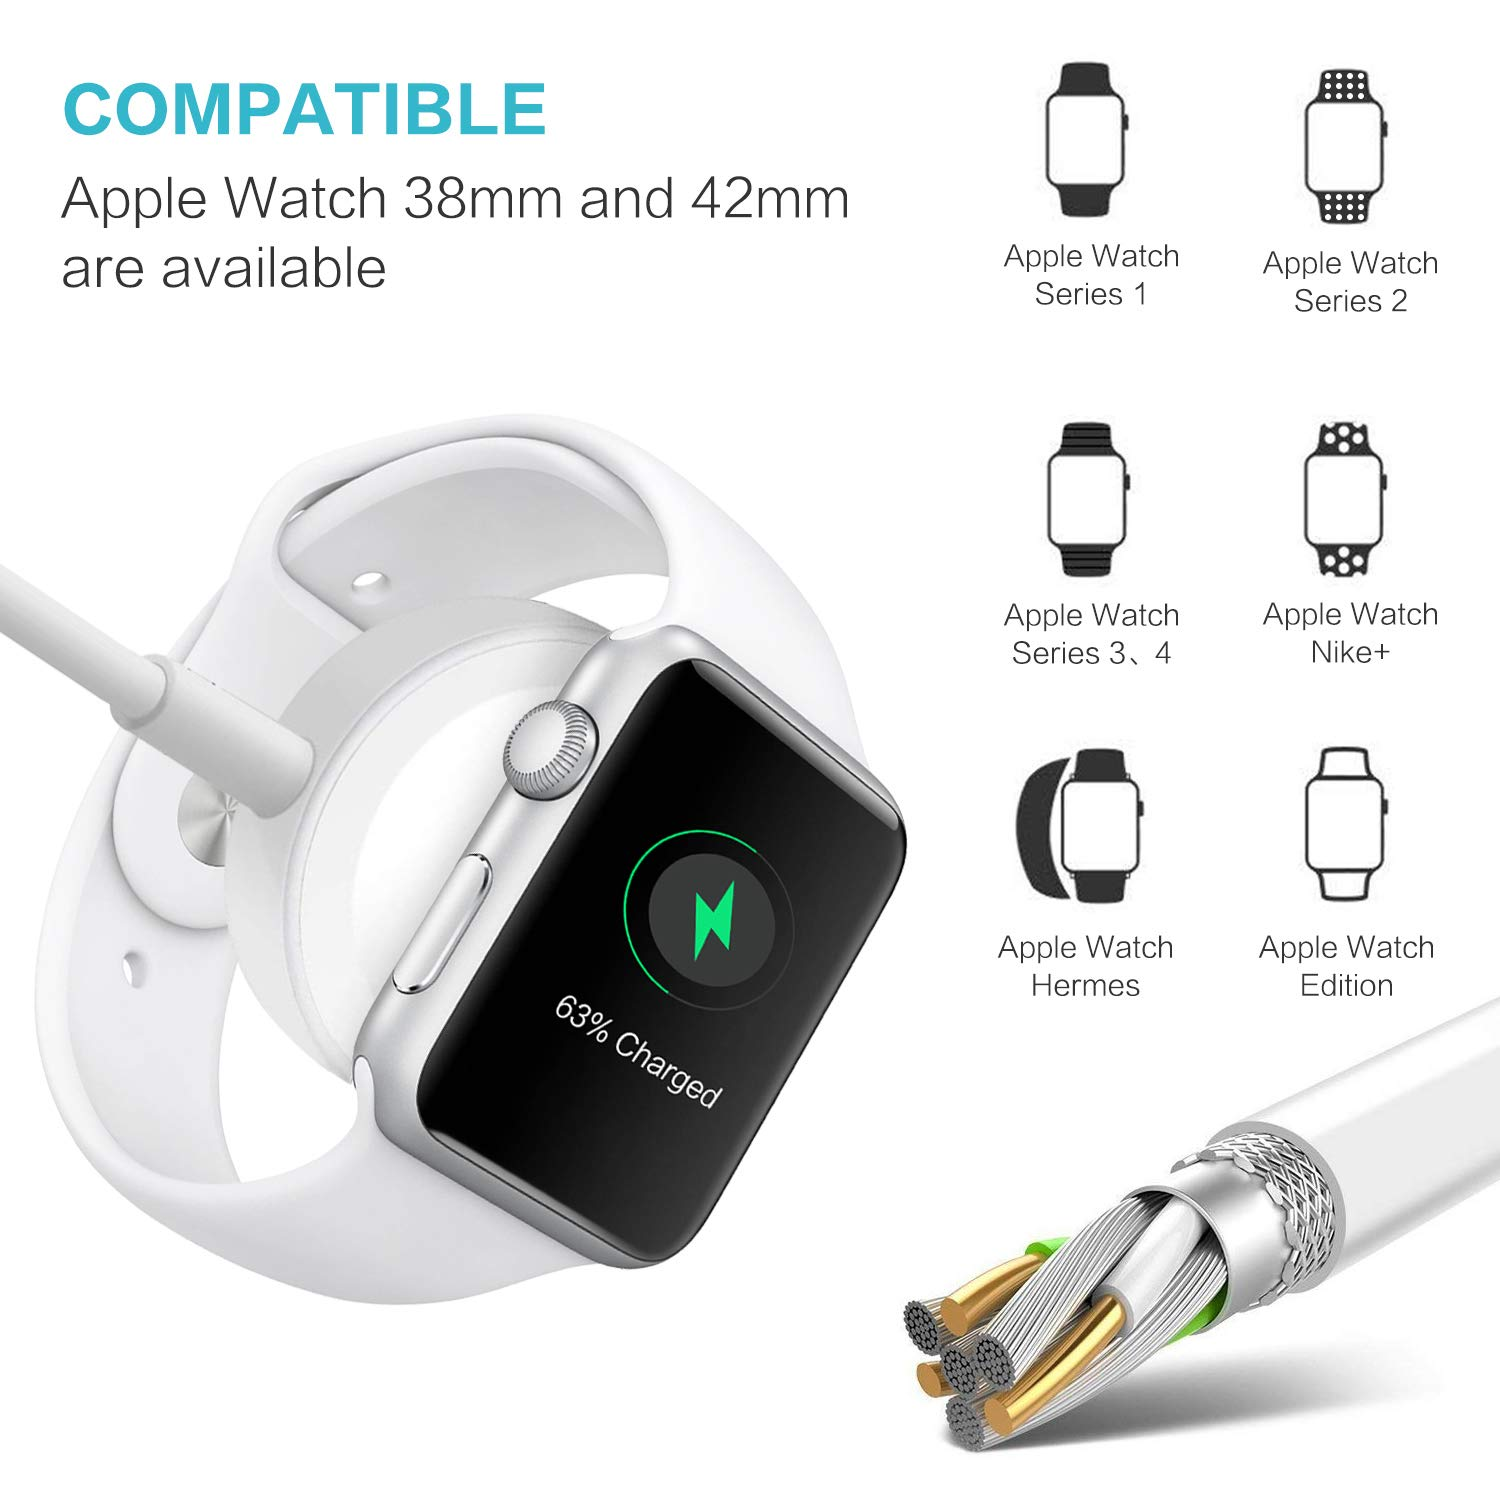 BLANDSTRS 2 in 1 Smart Watch Charger and Phone Charging Cable Compatible with Apple iWatch Series 4 3 2 1 for All 38 40 42 44 mm, Portable Combo Cord ...